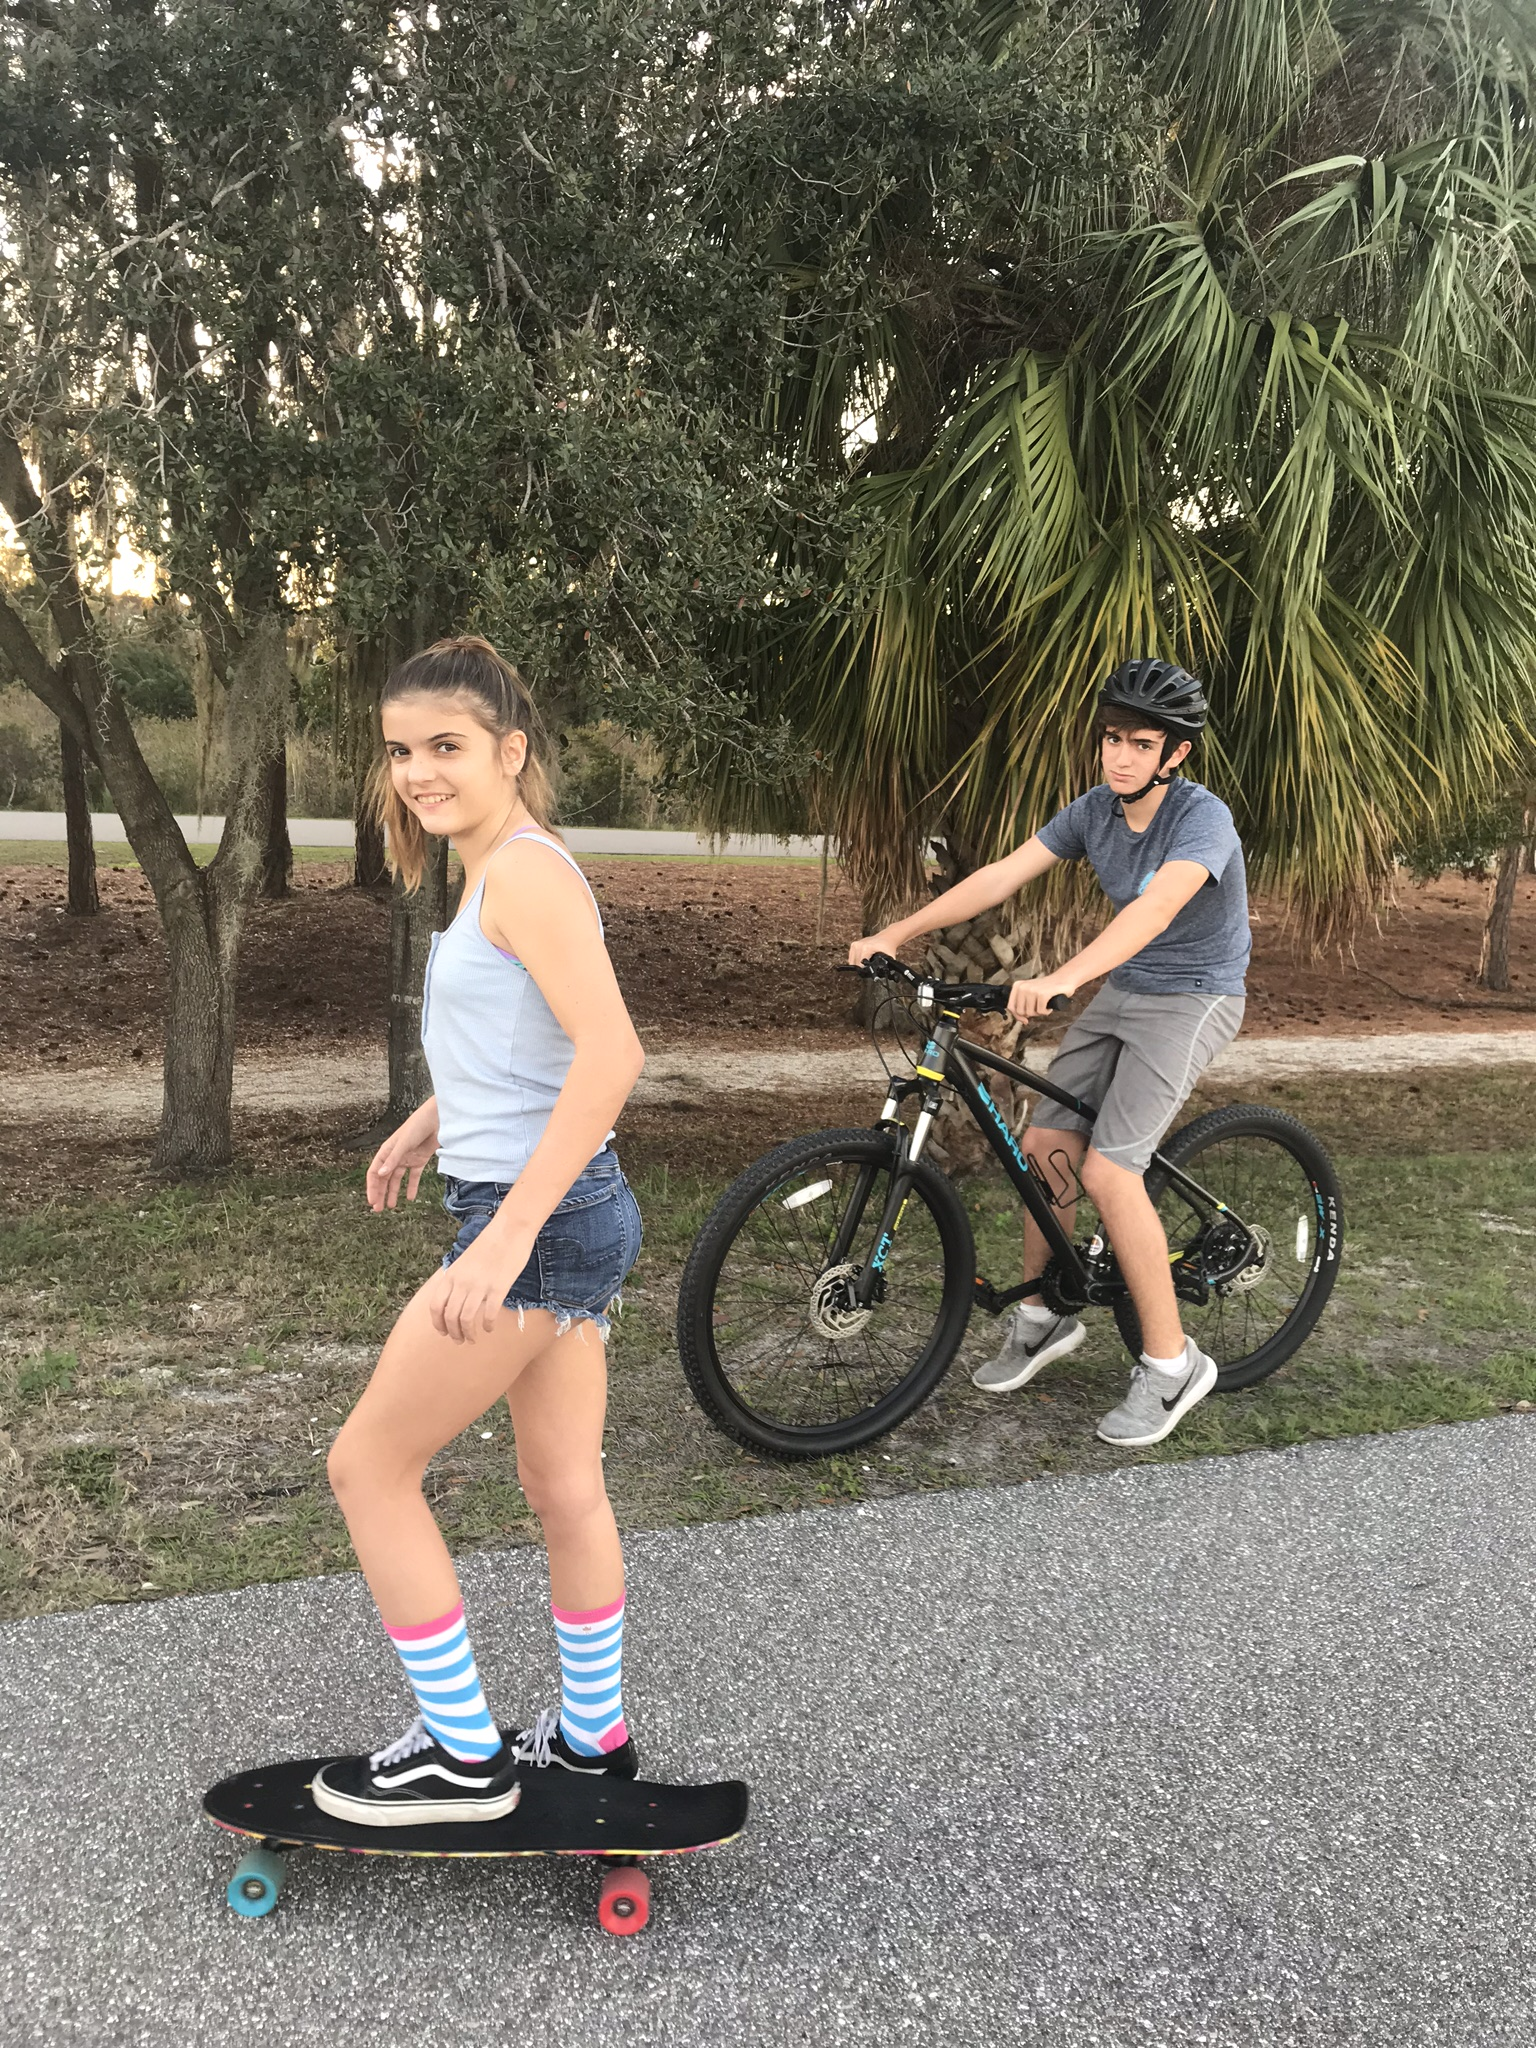 Teen skateboarding and biking